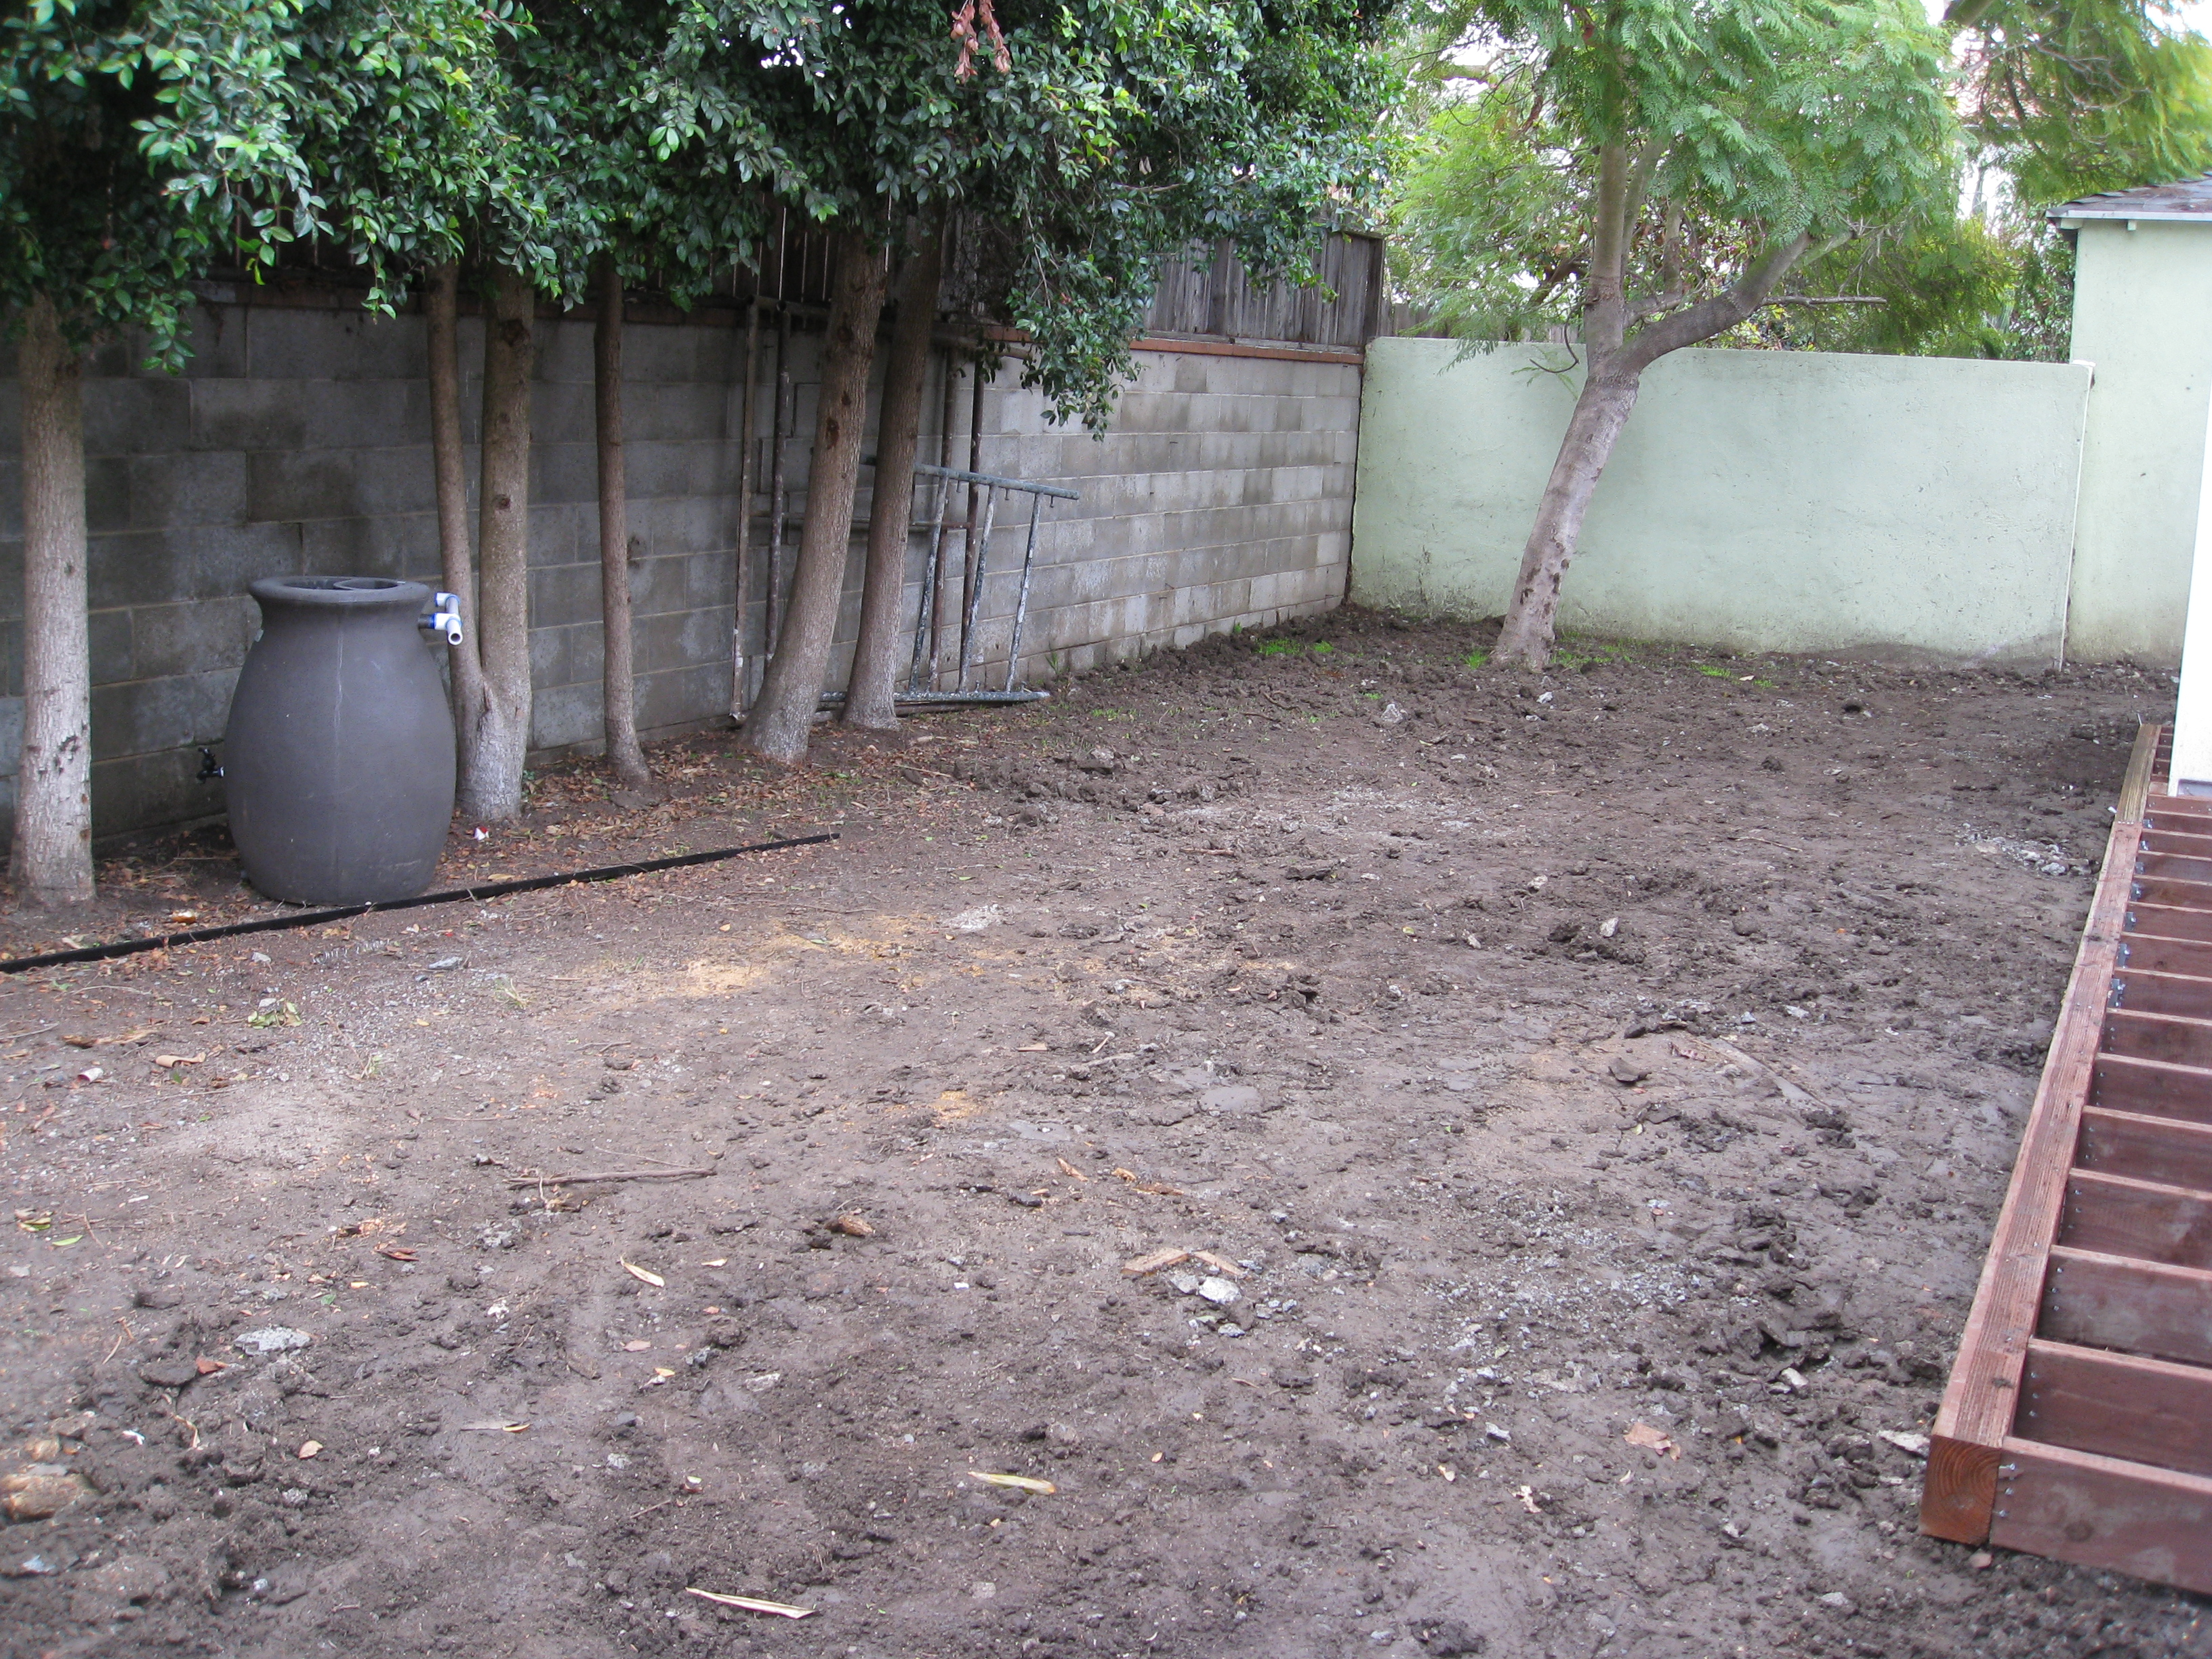 Before: the old lawn was demolished in construction. New decks put in along the house.